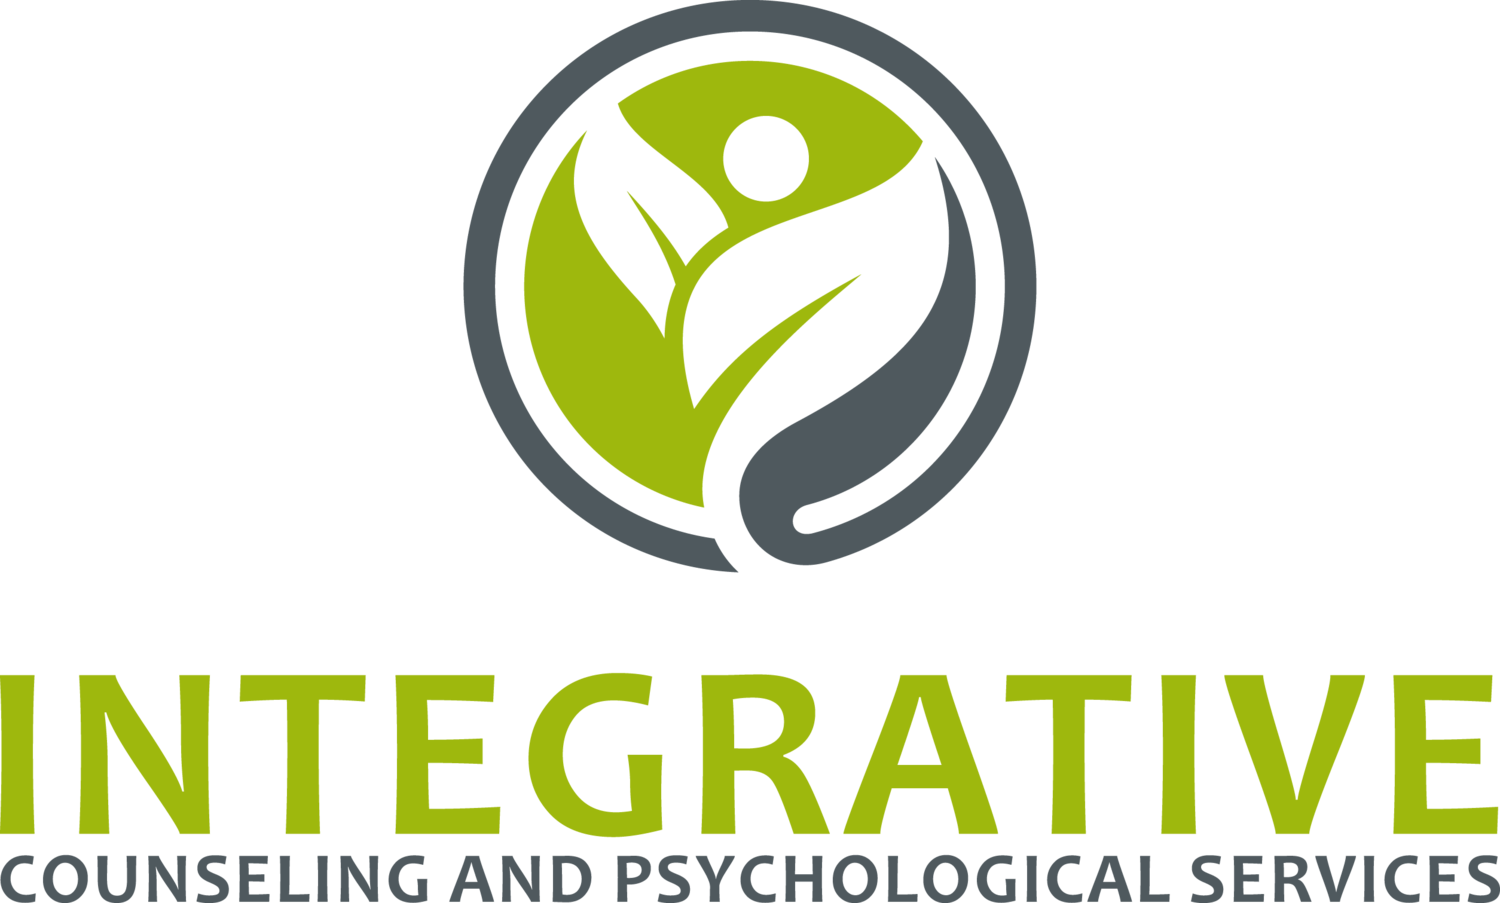 Integrative Counseling and Psychological Services LLC